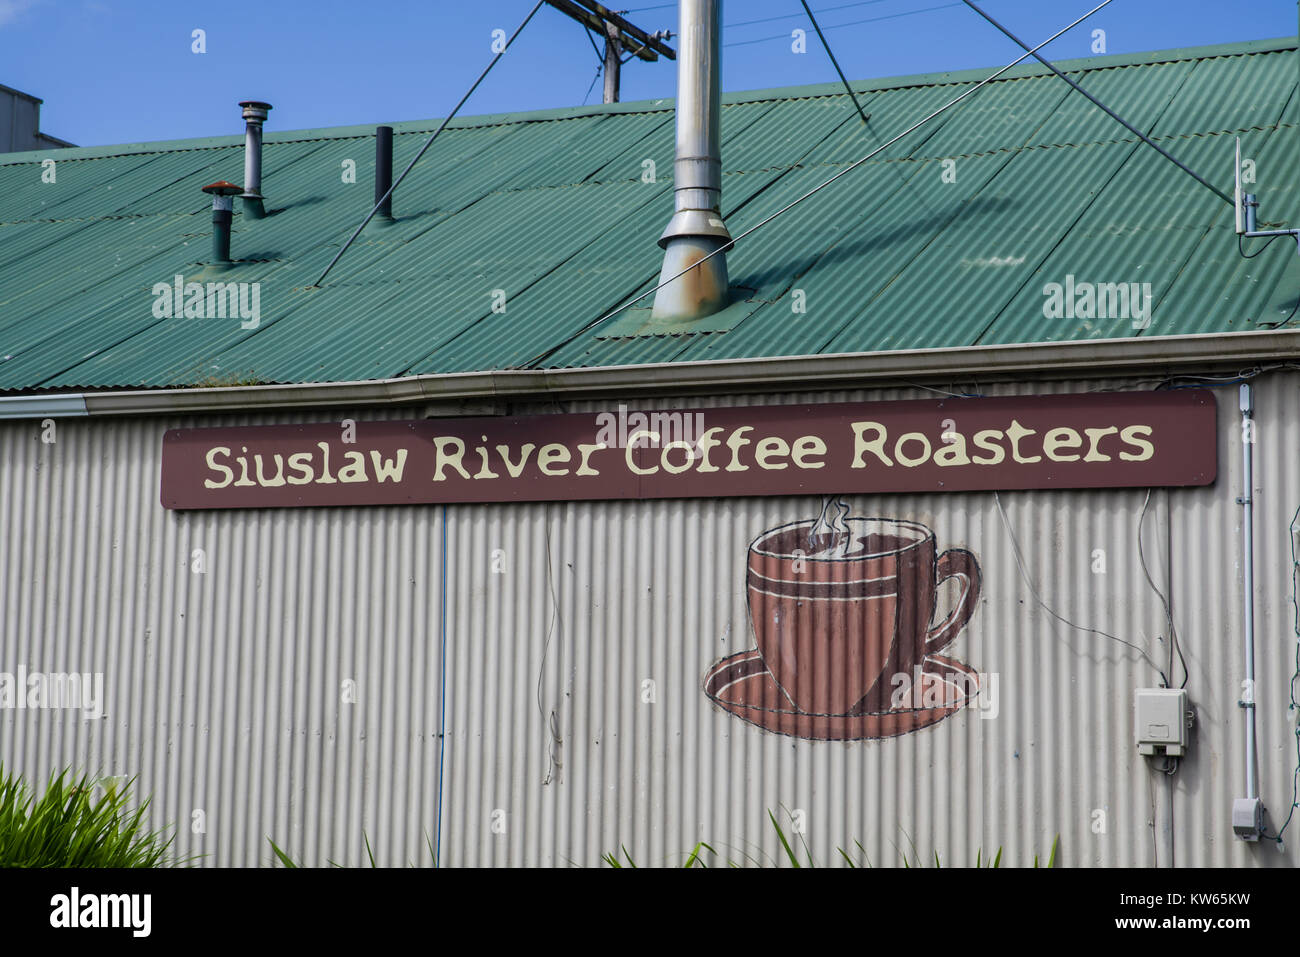 Siuslaw River Coffee Roasters building in FLorence, Oregon, USA - Stock Image